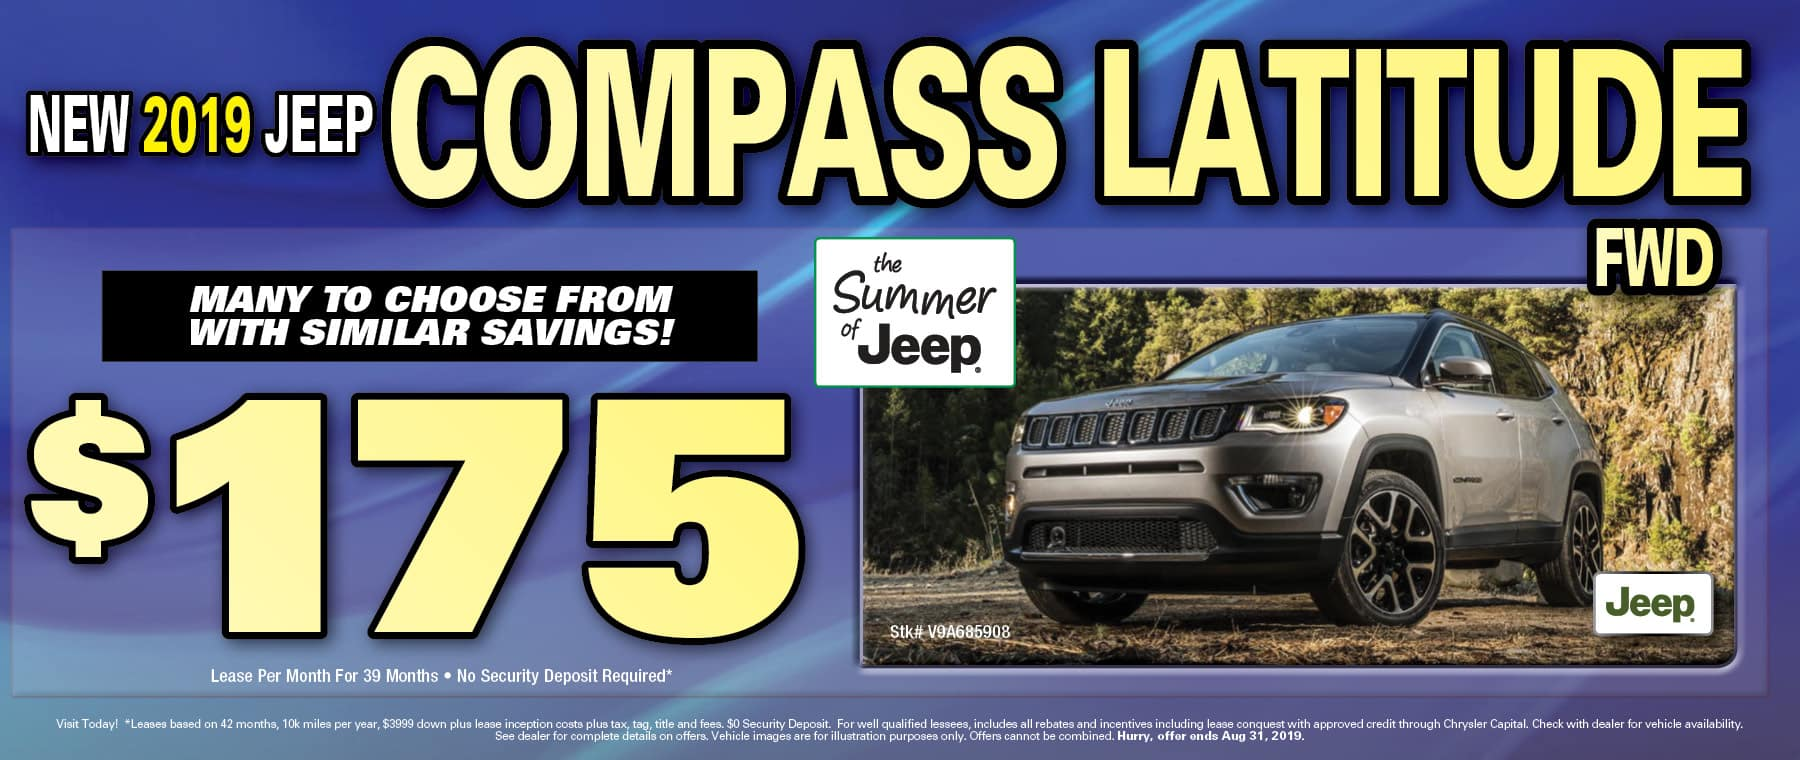 New 2019 Jeep Compass!